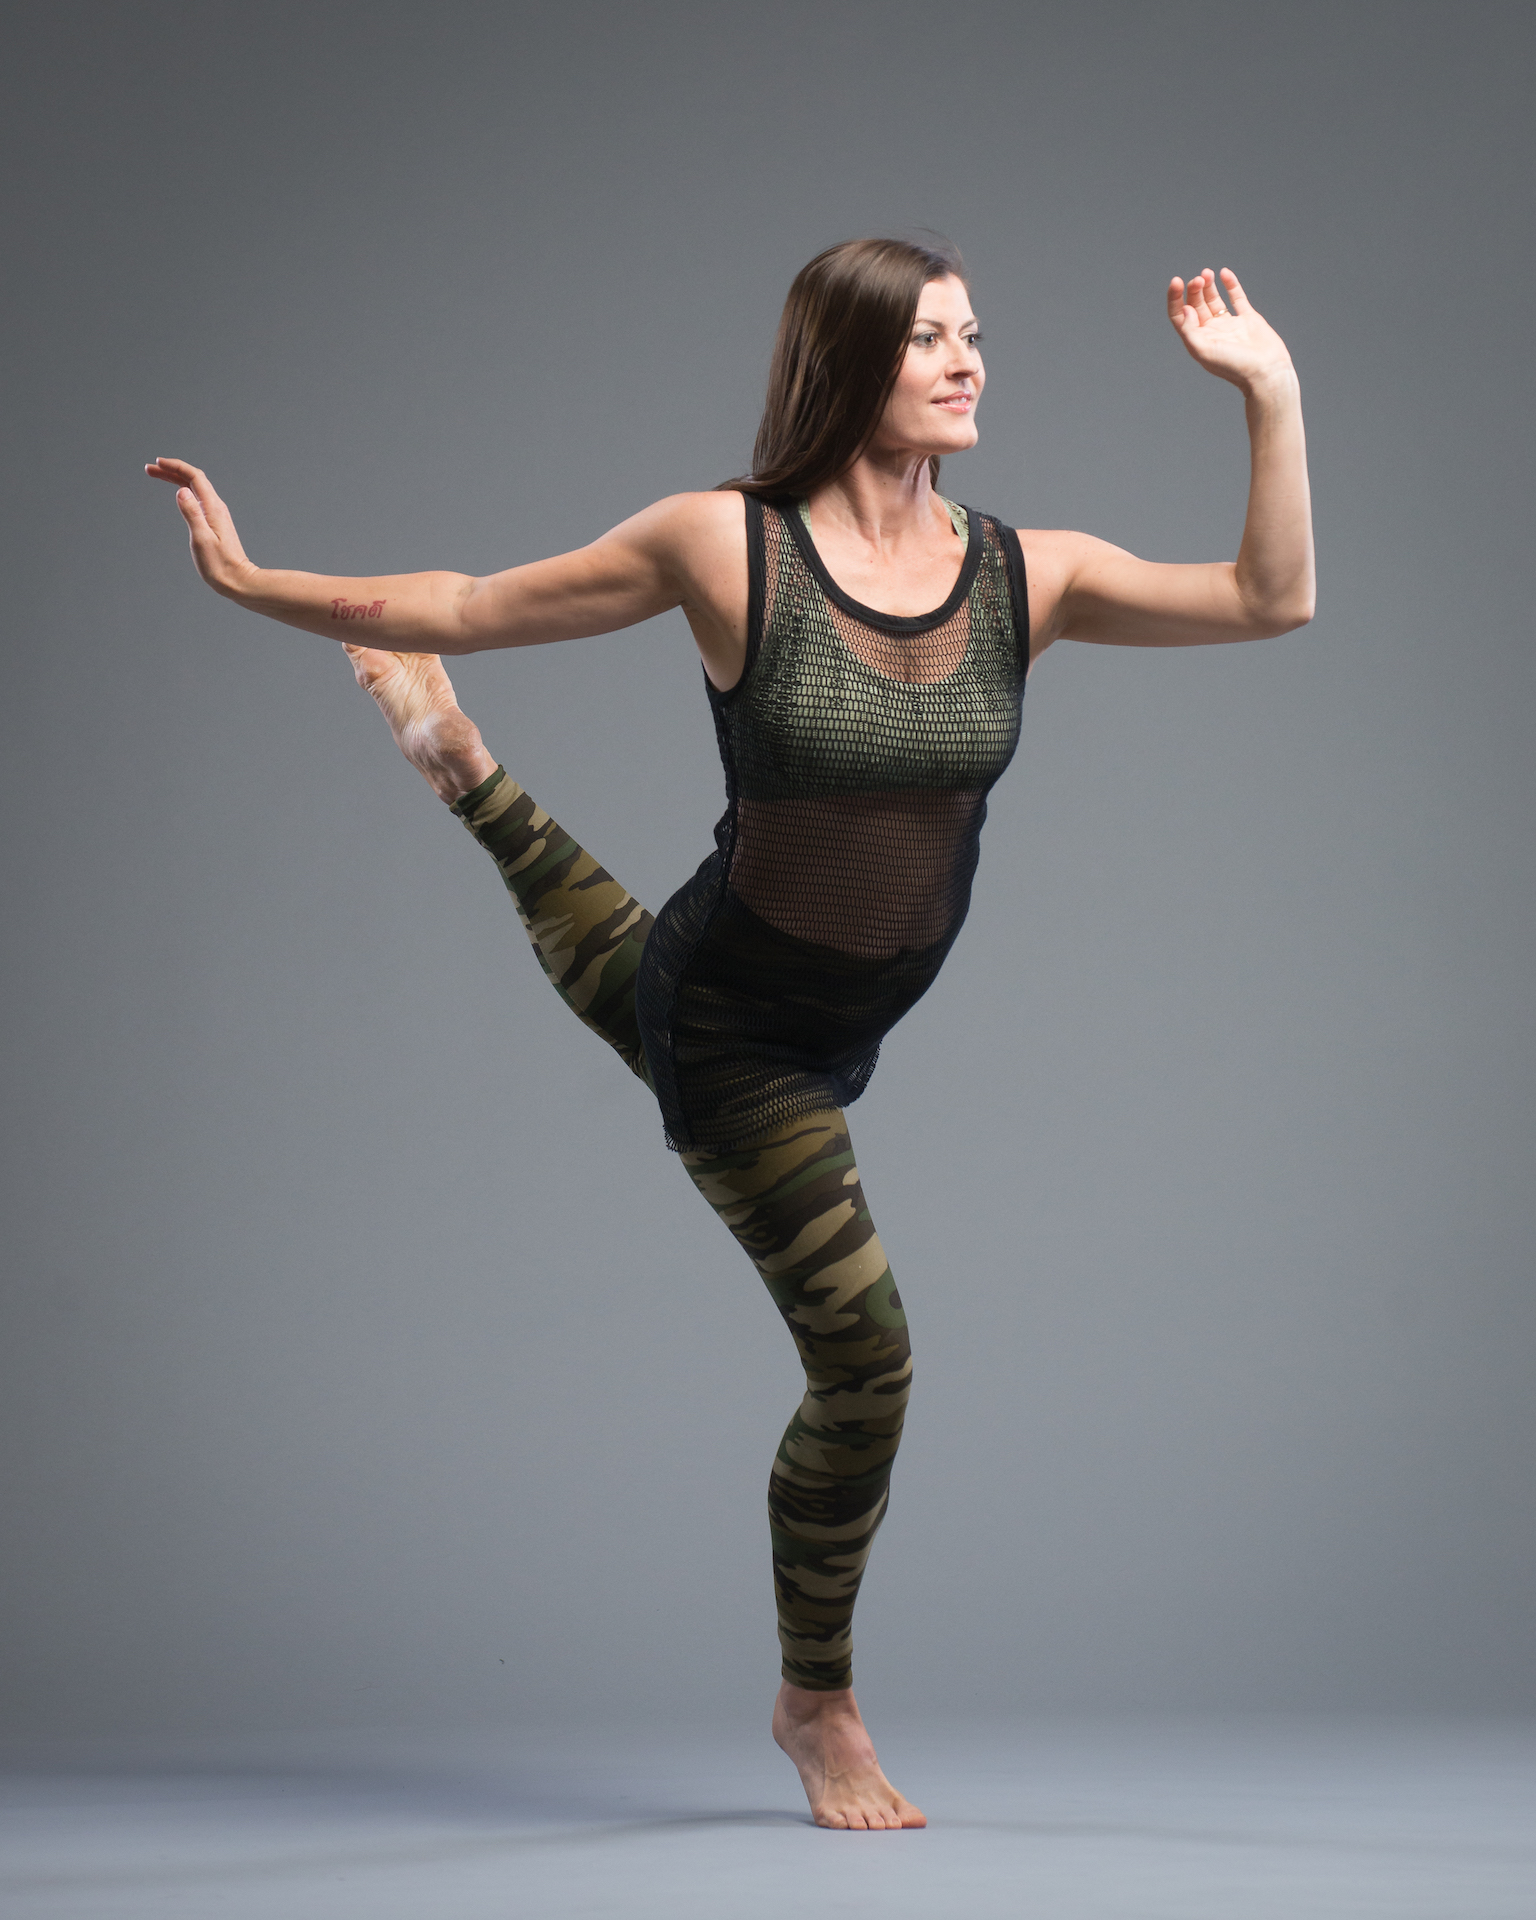 "Laura Rutledge - Laura is a professional ballet and modern dancer and a classically certified Pilates instructor. She began her Pilates training in 2000 while dancing with the State Street Ballet in Santa Barbara, CA and she continued to incorporate the method into her daily training regimen. In 2010, she moved to New York City to dance with the Lar Lubovitch Dance Company. When she retired from her performance career, she completed her 650-hour Comprehensive Pilates certification through Power Pilates.She taught for a wide variety of institutions while living in NYC, including dance intensives at the Joffrey Ballet School and Lar Lubovitch Dance. Laura has recently added the role of mother to her resume and in addition to Pilates, also teaches ""Mini & Me"", a fitness class for parents and their babies.Laura strives to help her students push themselves past their perceived limits with encouragement and humor. At the same time, she respects that everyone has different strengths and weaknesses, so she tailors classes with various modification options in order to meet everyone's individual needs. Above all, she asks each person to listen to their body and trust their instincts. ""My goal is to provide a fun and safe class environment while building strength, flexibility, and stamina."""